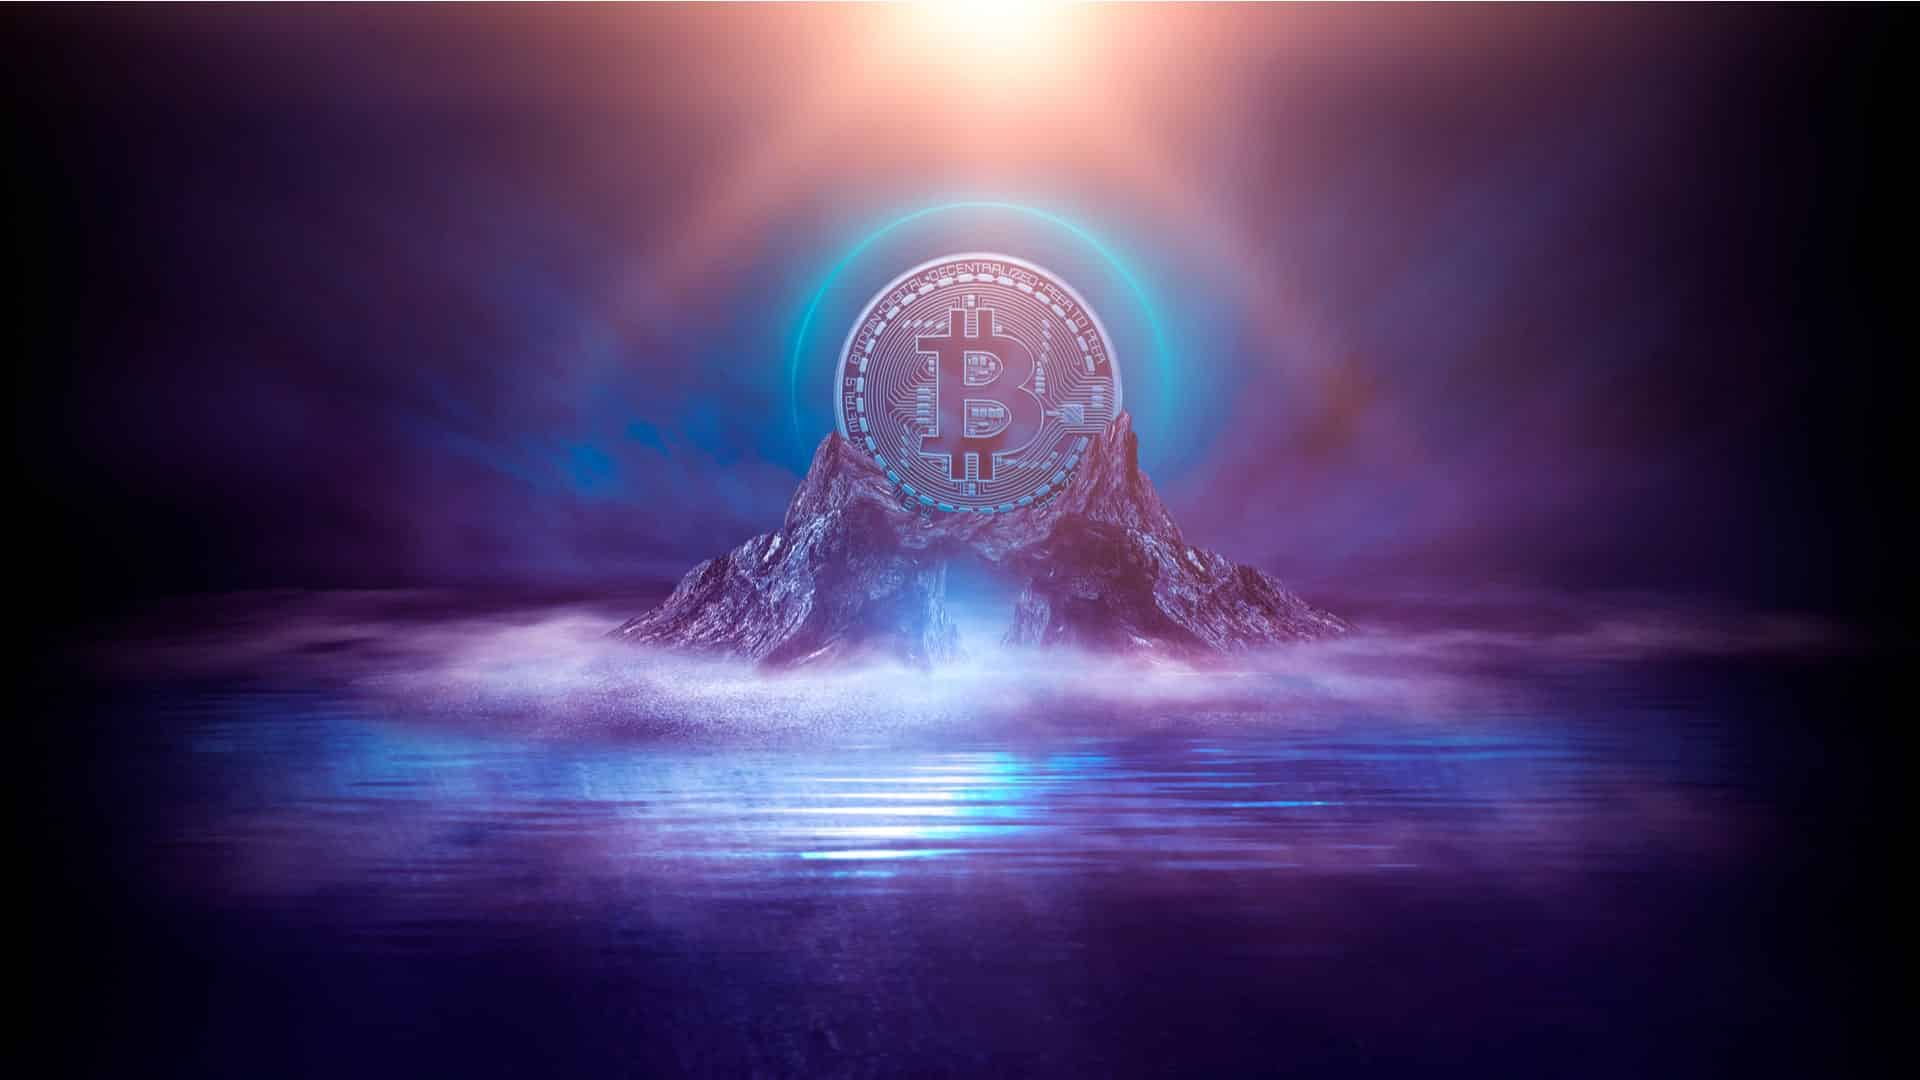 Intend Bitcoin for at least 10 years, why BTC will continue to rise?